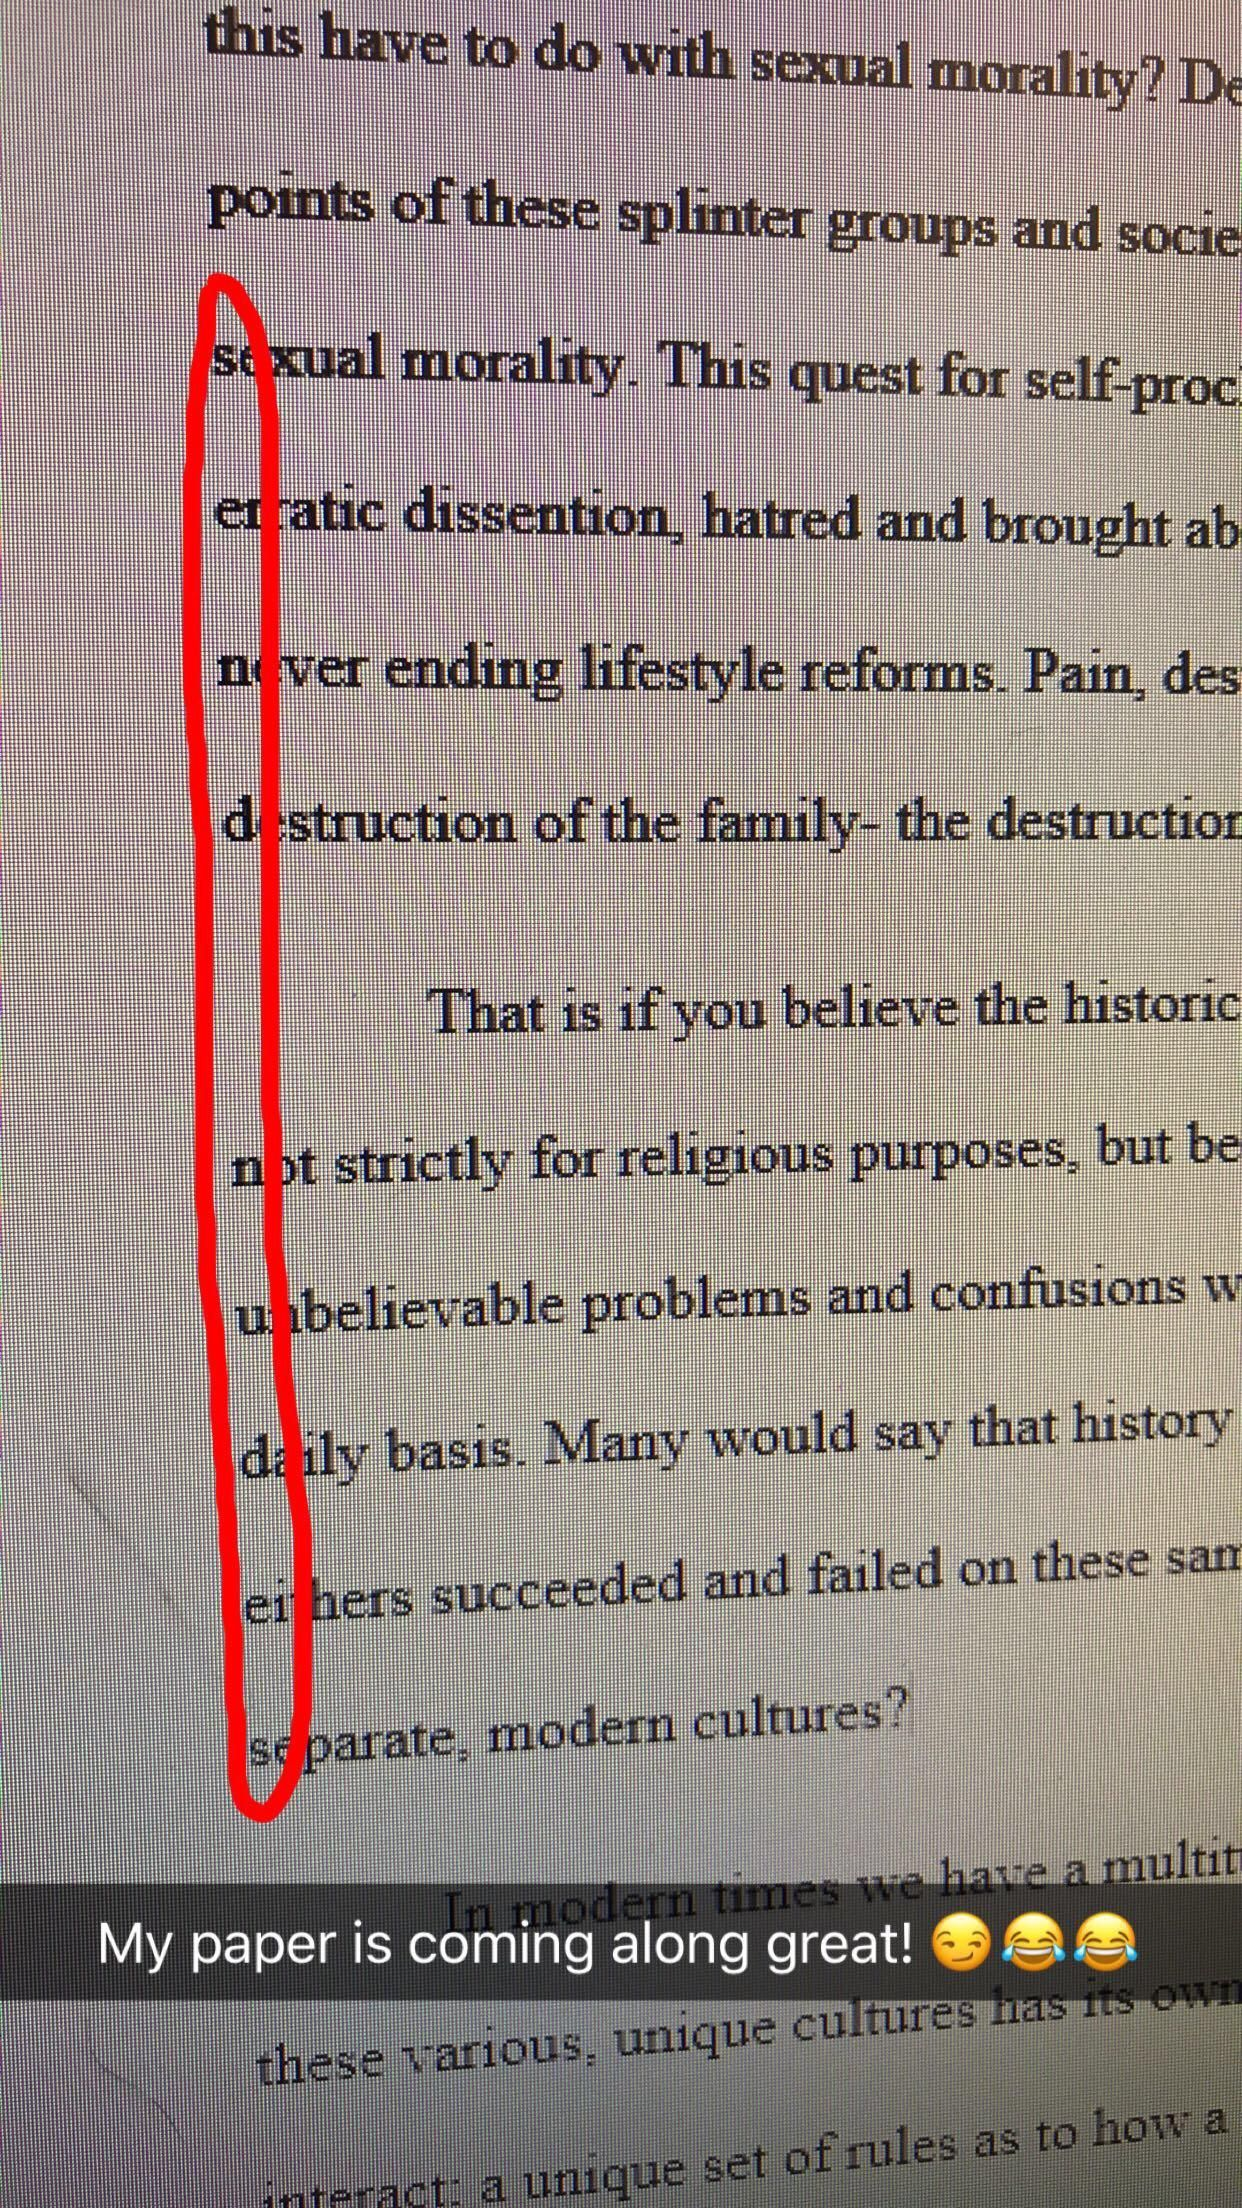 "Snuck this into a paper about ""sexual morality""."